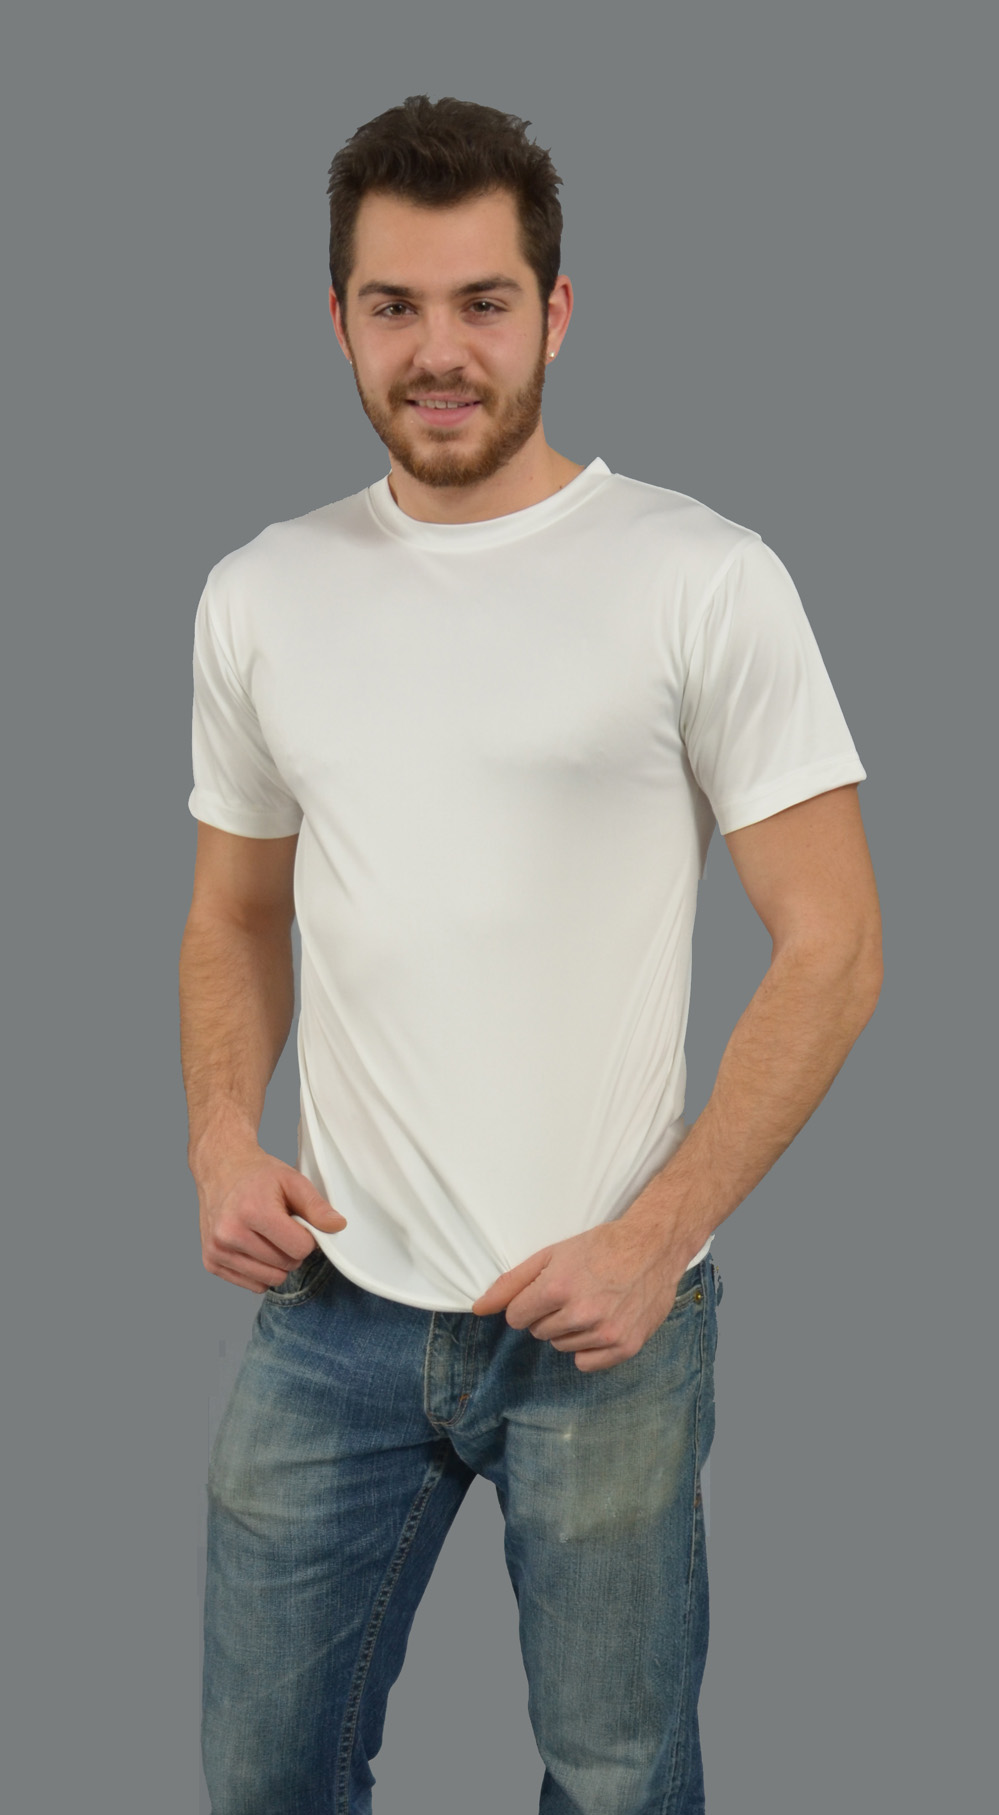 Monag 971001 - S/S Men's Crew Neck Tee 100% MicroPoly ...